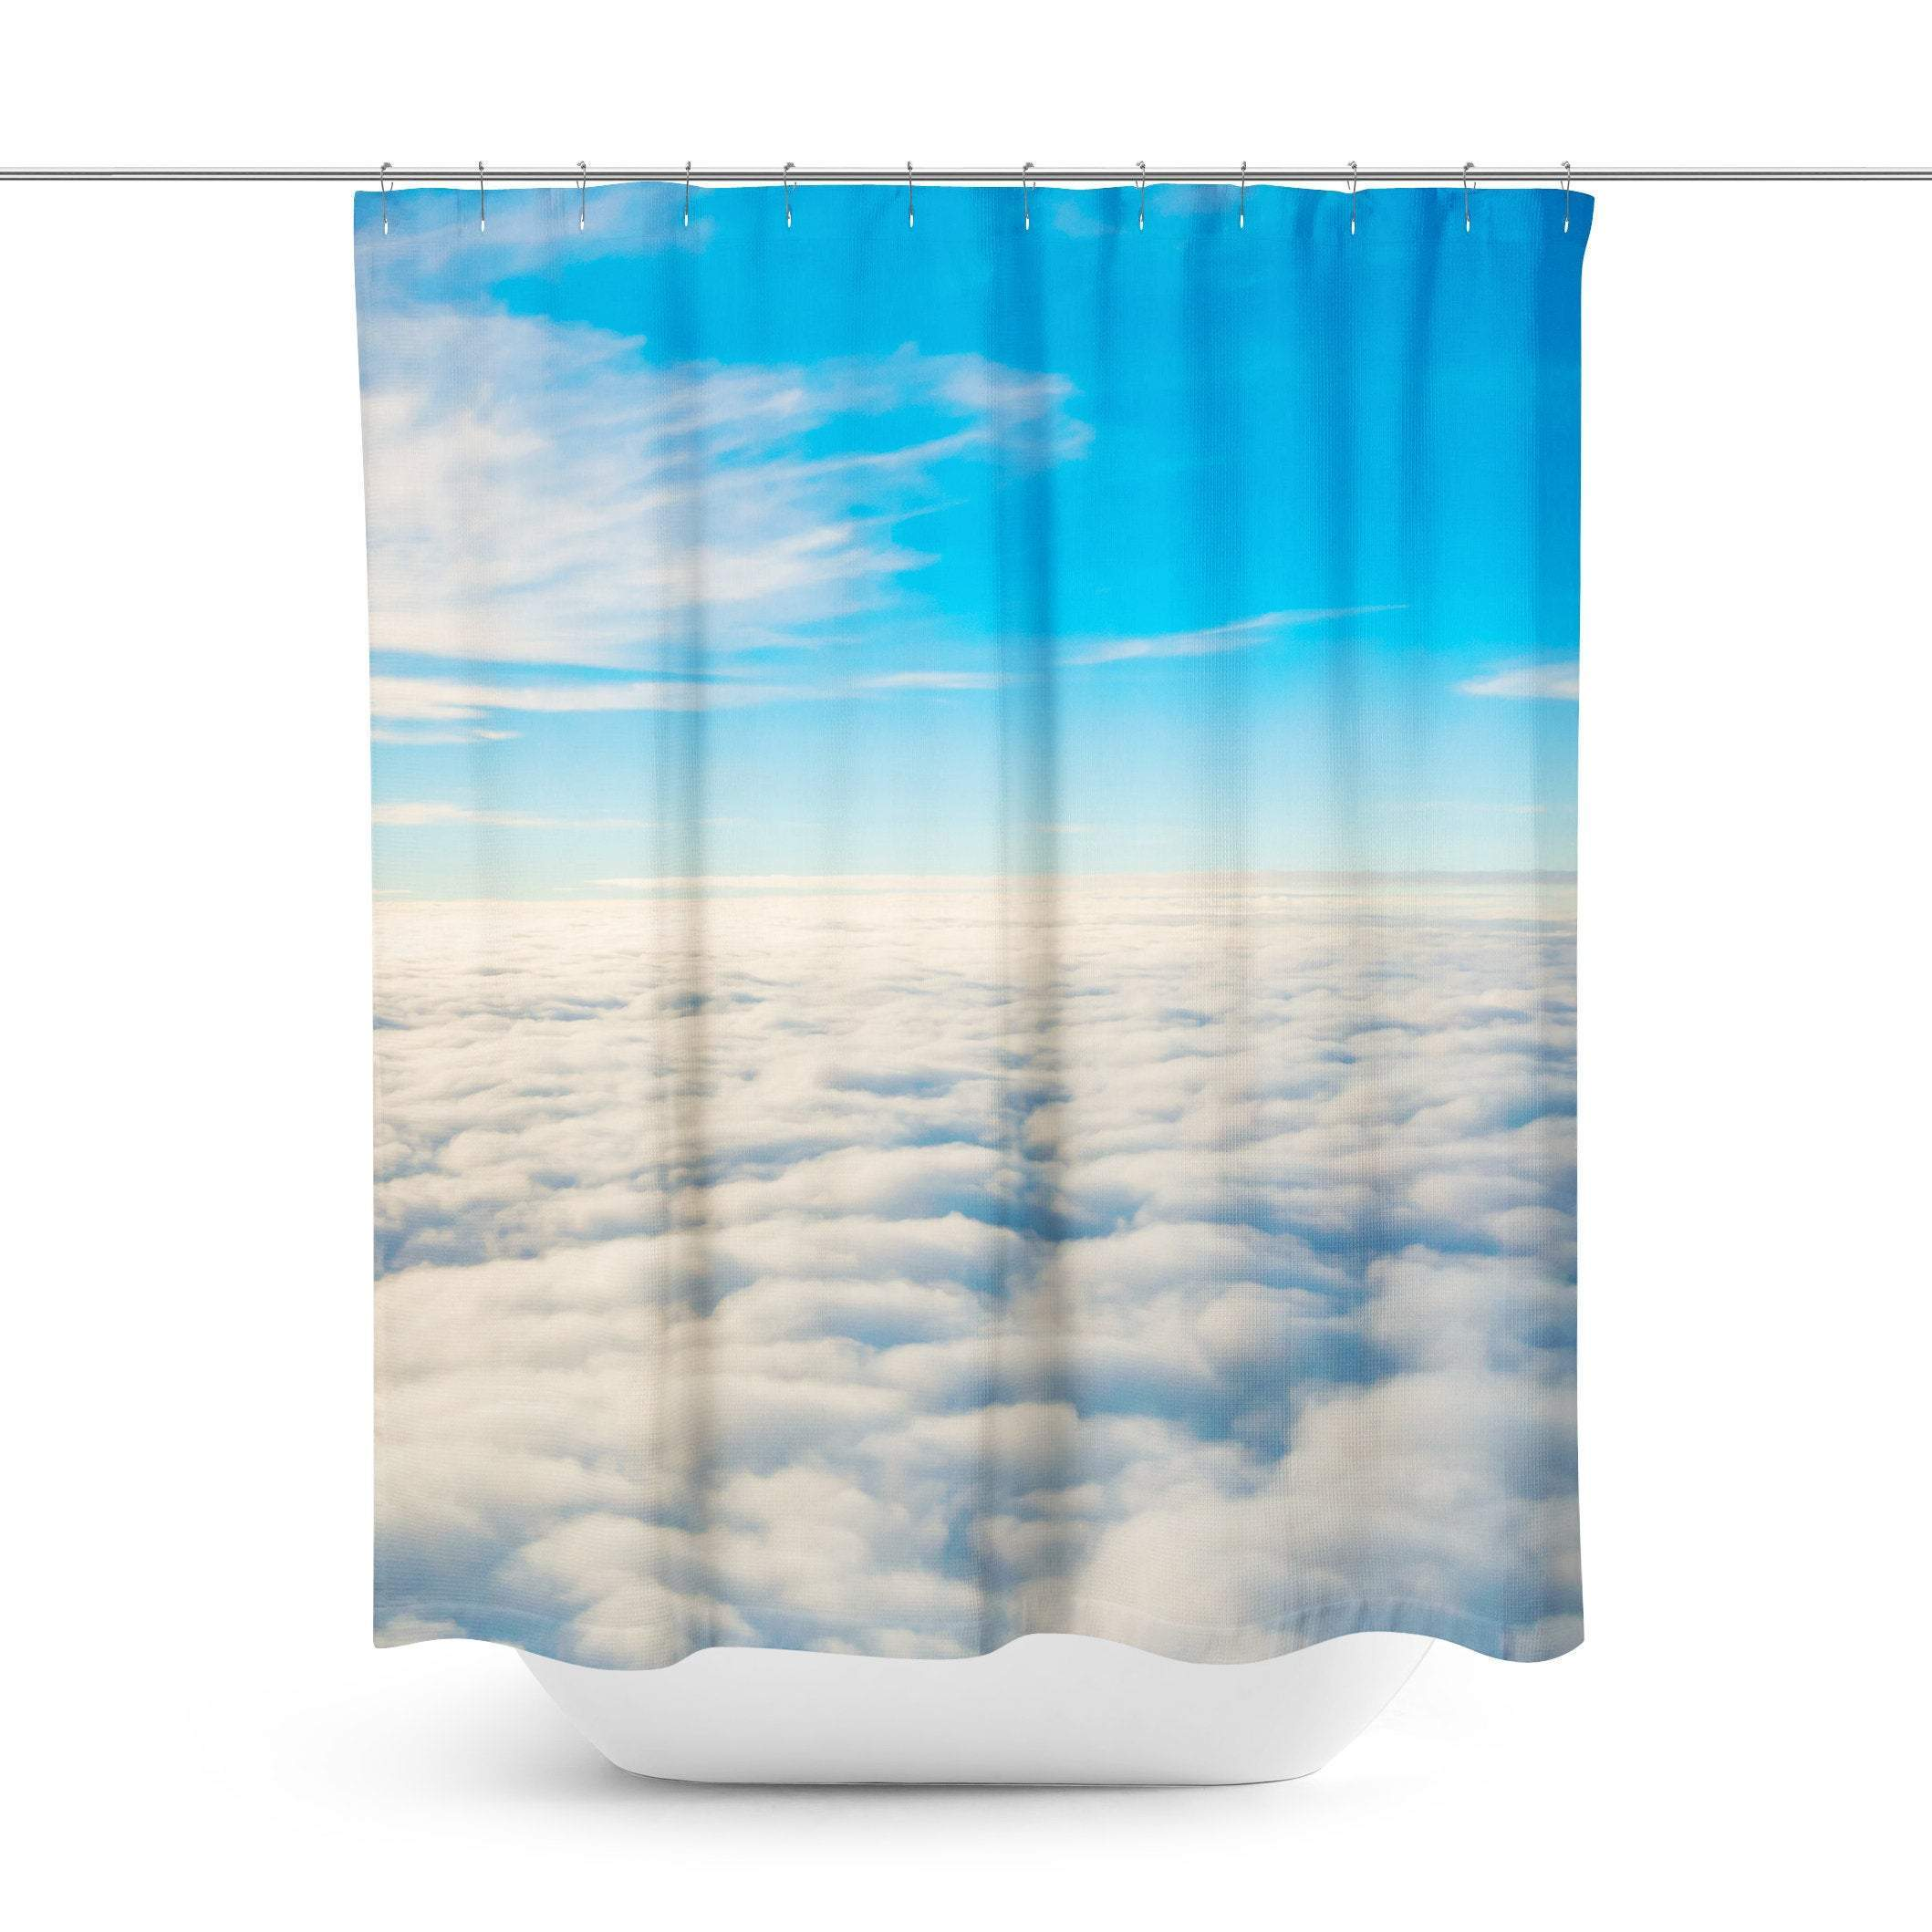 Clouds Shower Curtain Curtains Shower Curtain Designer Shower